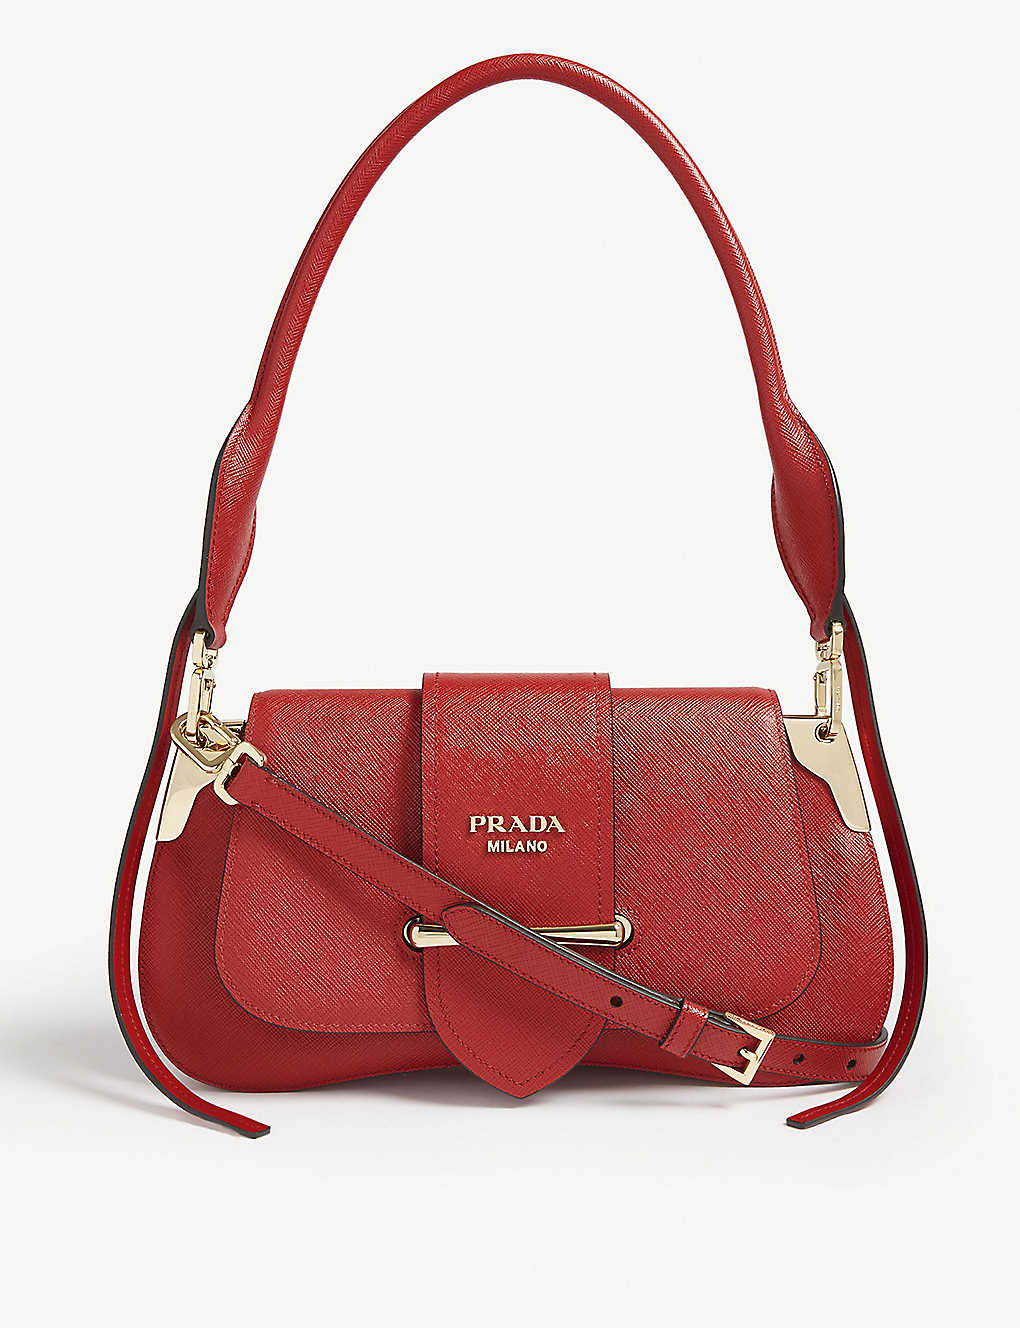 fae2a806a3e9 PRADA - Sidney saddle bag | Selfridges.com